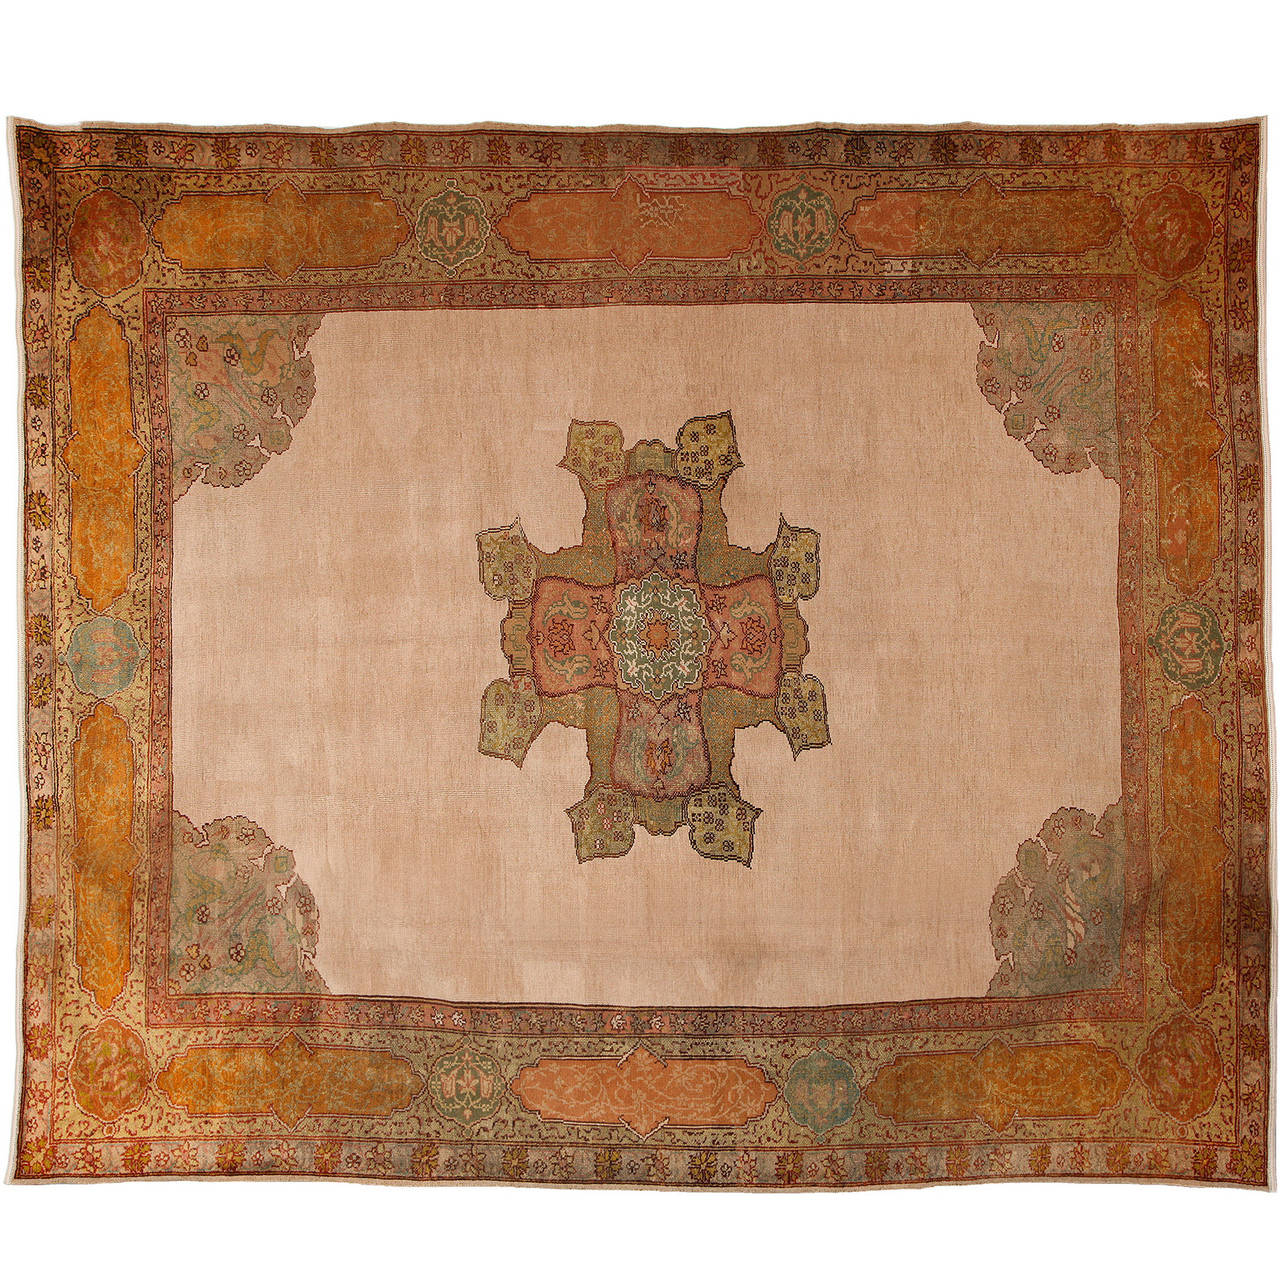 Turkish Oushak Carpet in Pure Wool and Natural Vegetable Dyes, circa 1880